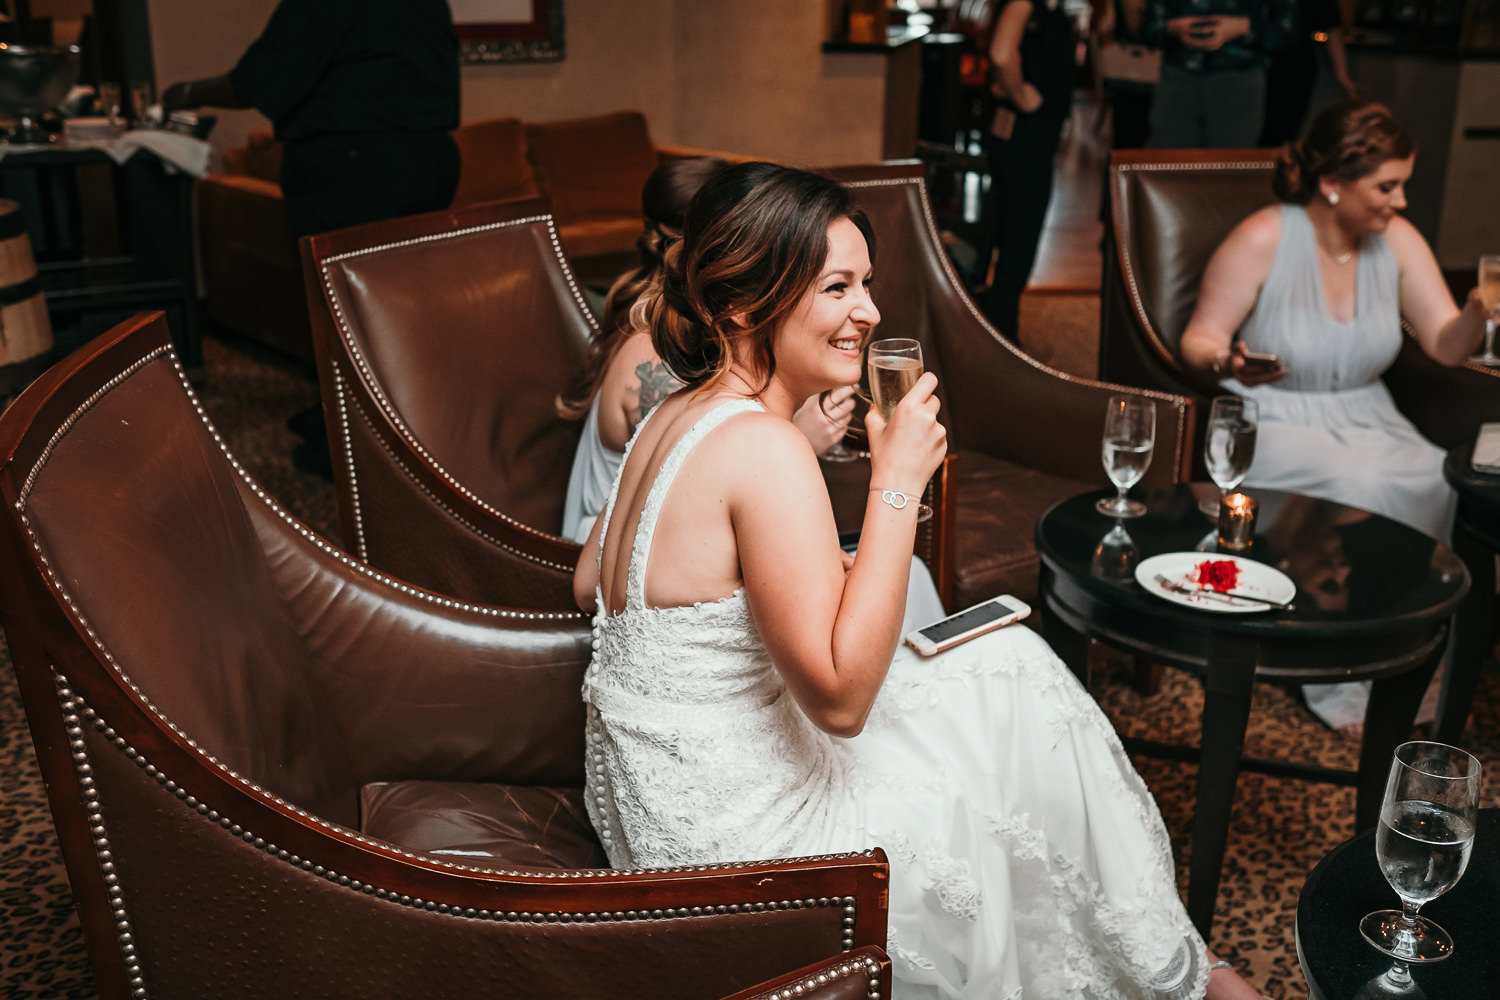 bride and bridesmaids sitting on leather chairs holding Champagne glasses